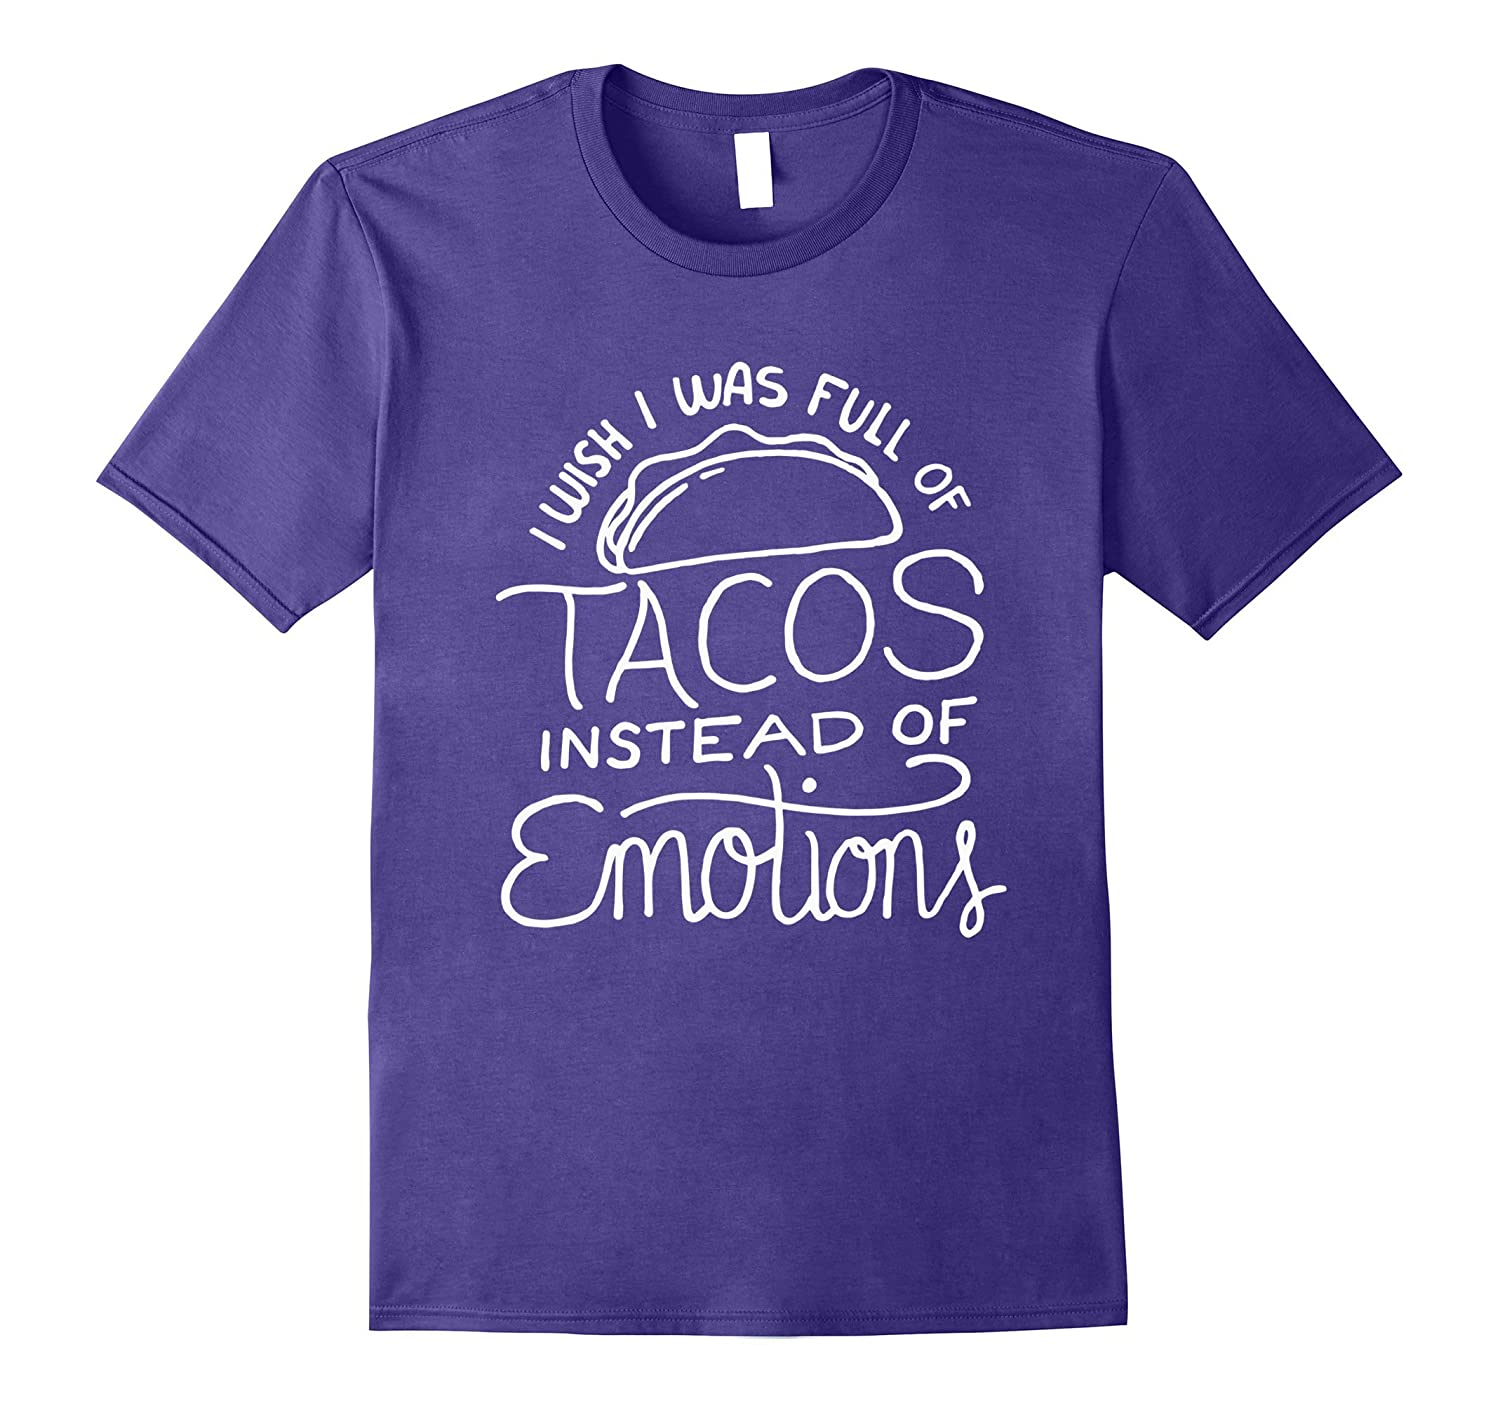 Wish I Was Full of Tacos Instead of Emotions - Funny Food T-TD